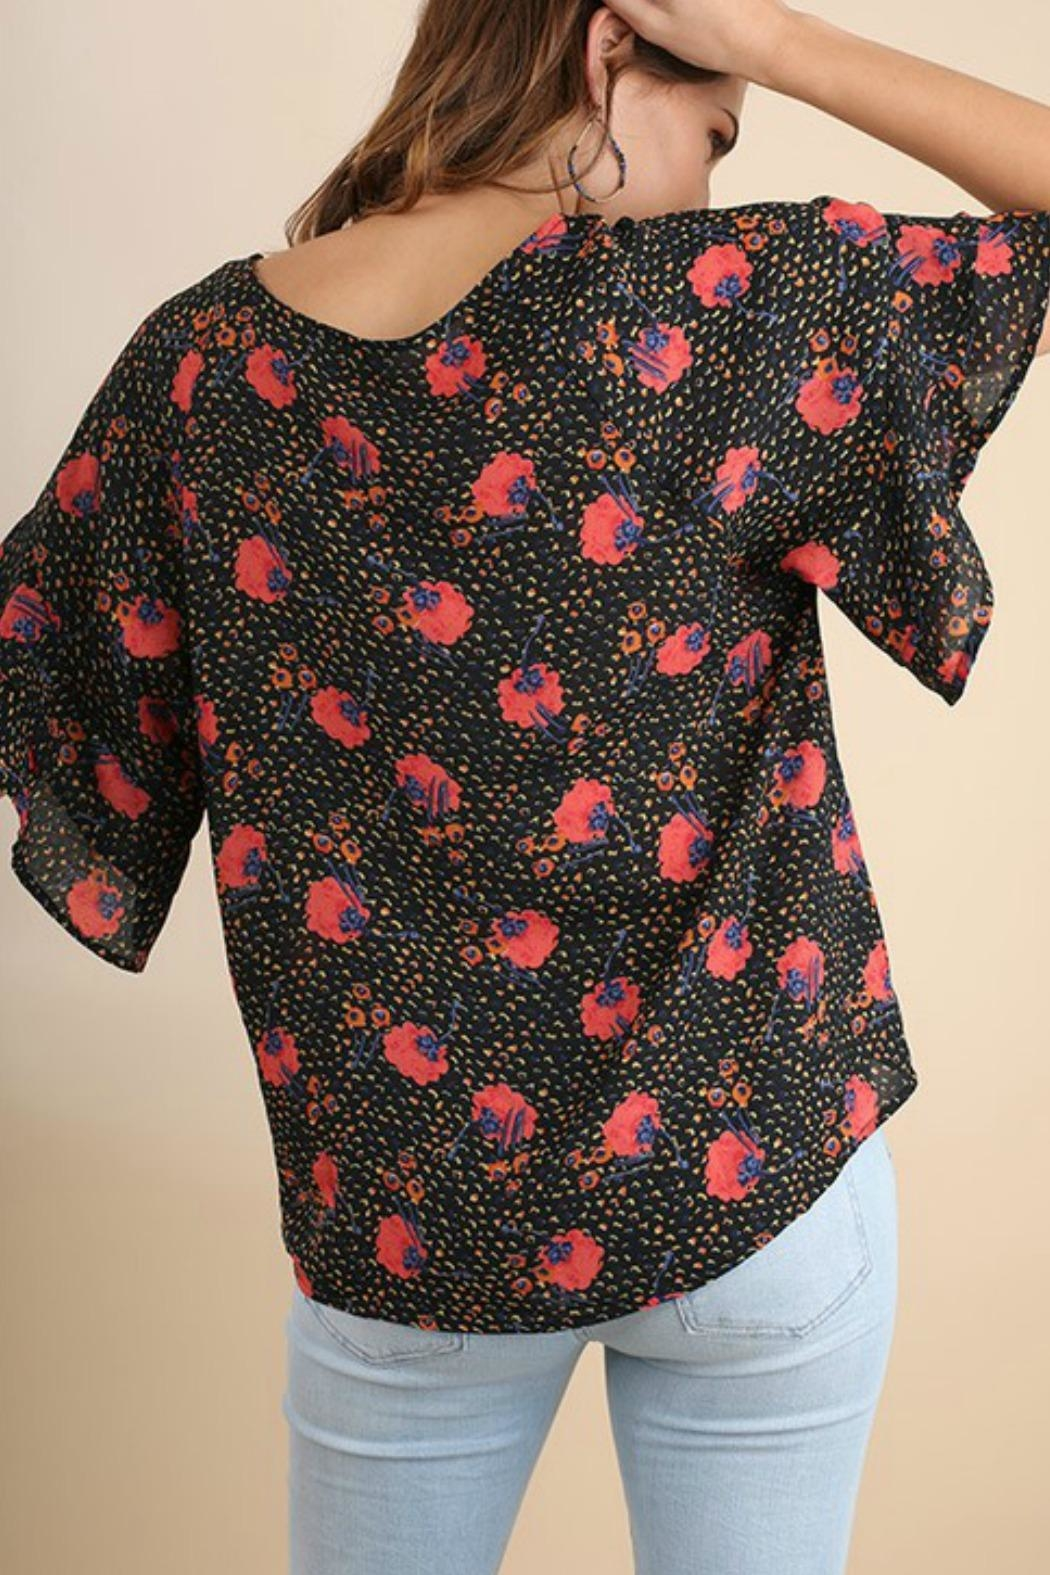 Umgee USA Floral Ruffle Top - Back Cropped Image